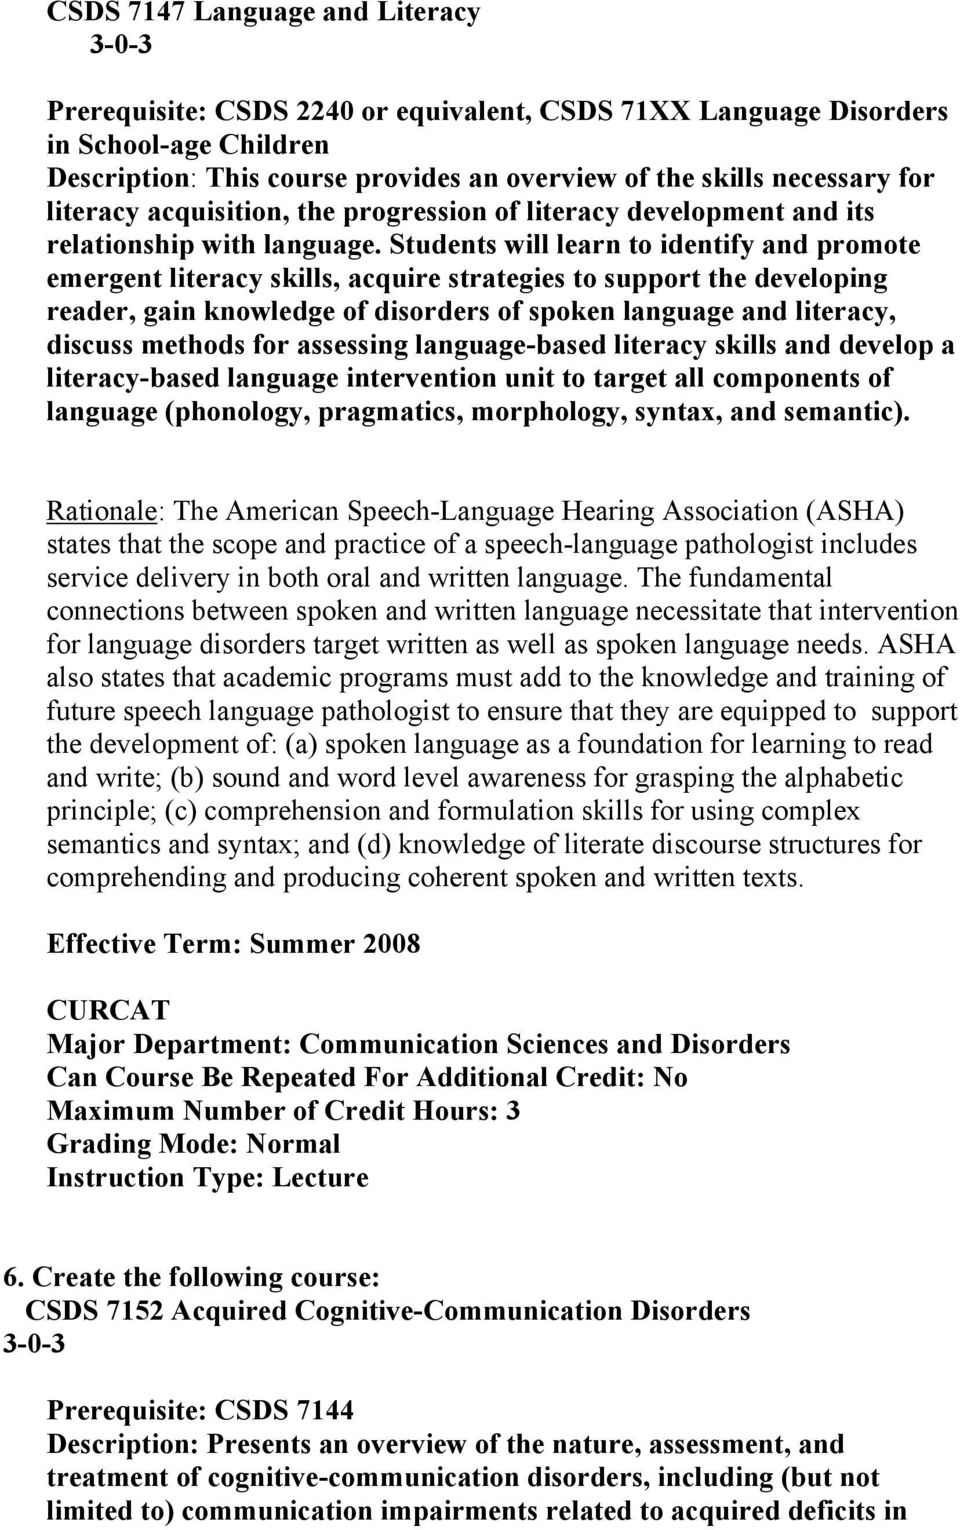 Students will learn to identify and promote emergent literacy skills, acquire strategies to support the developing reader, gain knowledge of disorders of spoken language and literacy, discuss methods